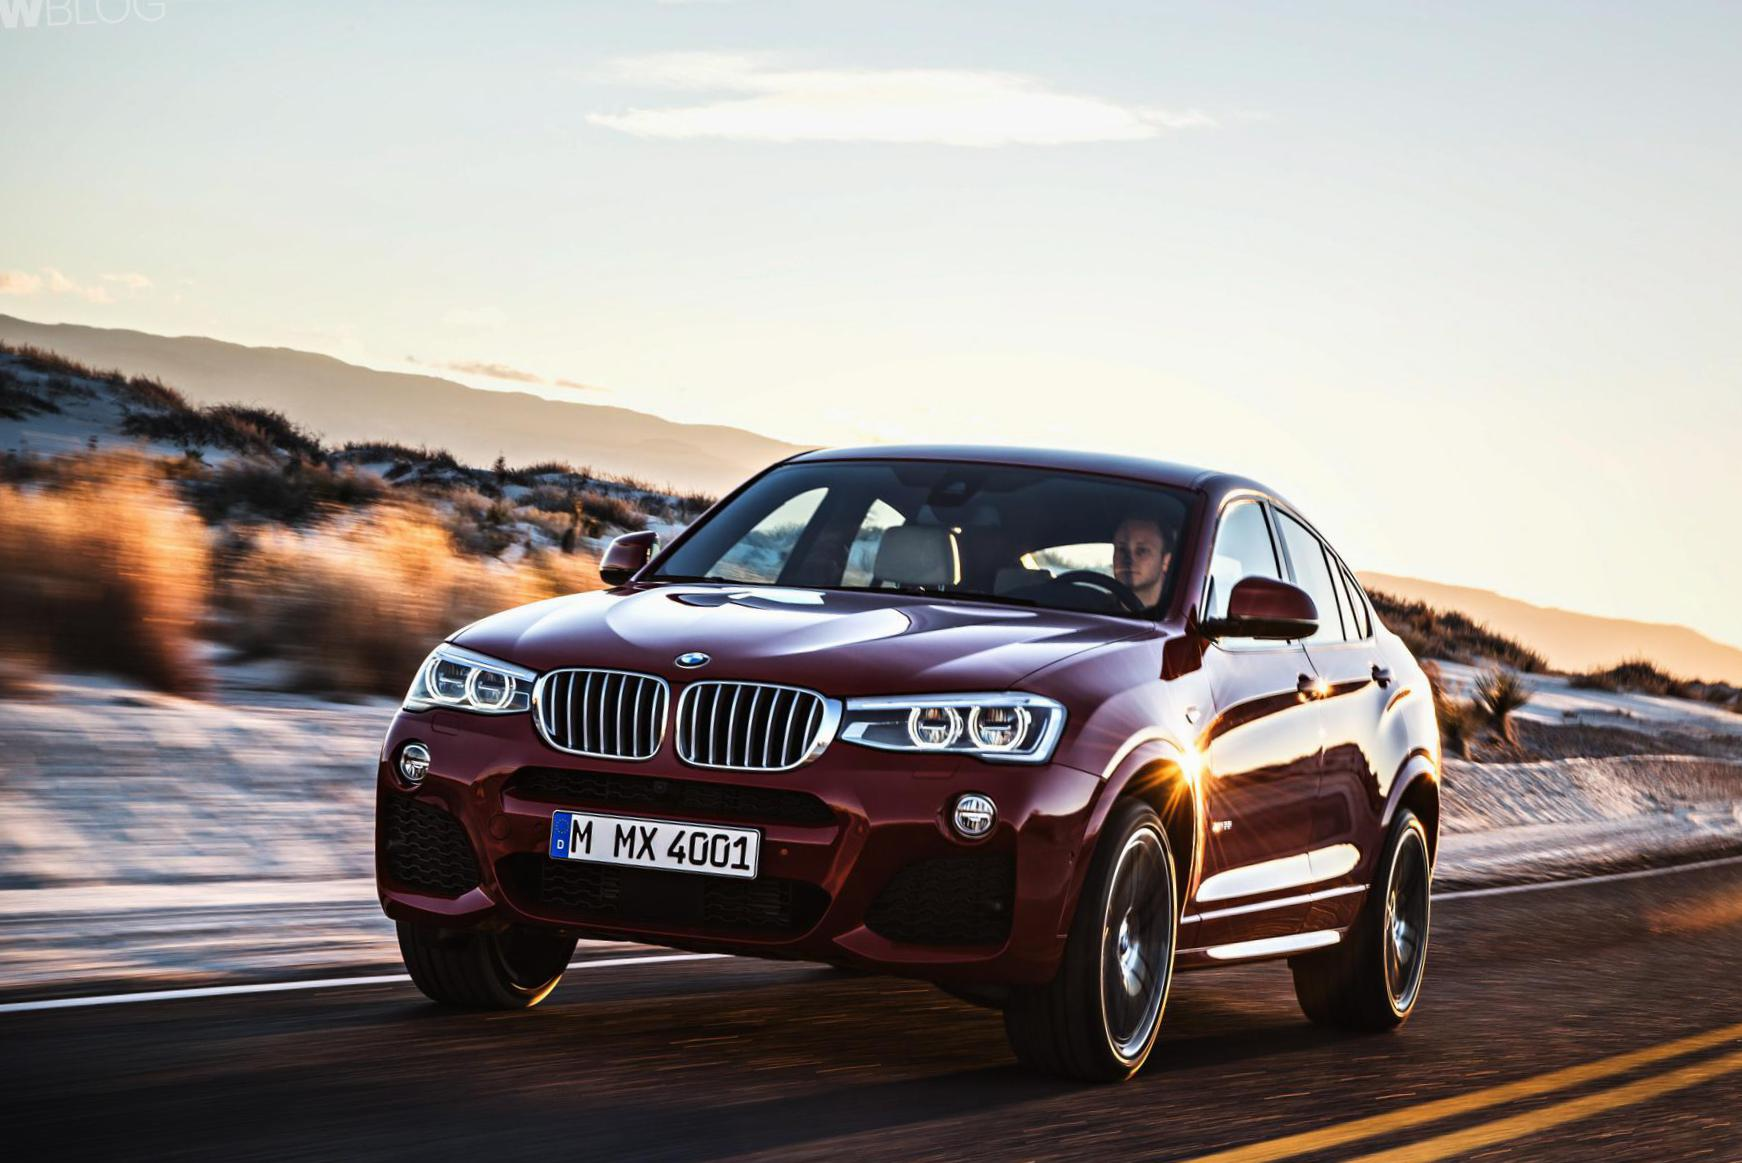 BMW X4 (F26) how mach coupe